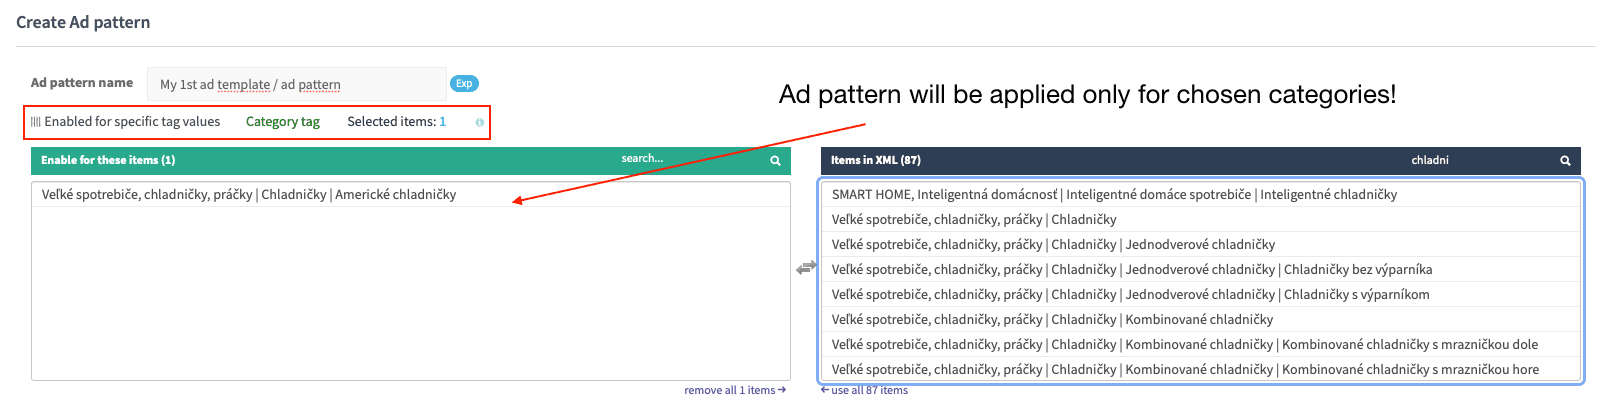 Filter ad patterns by category(ies)